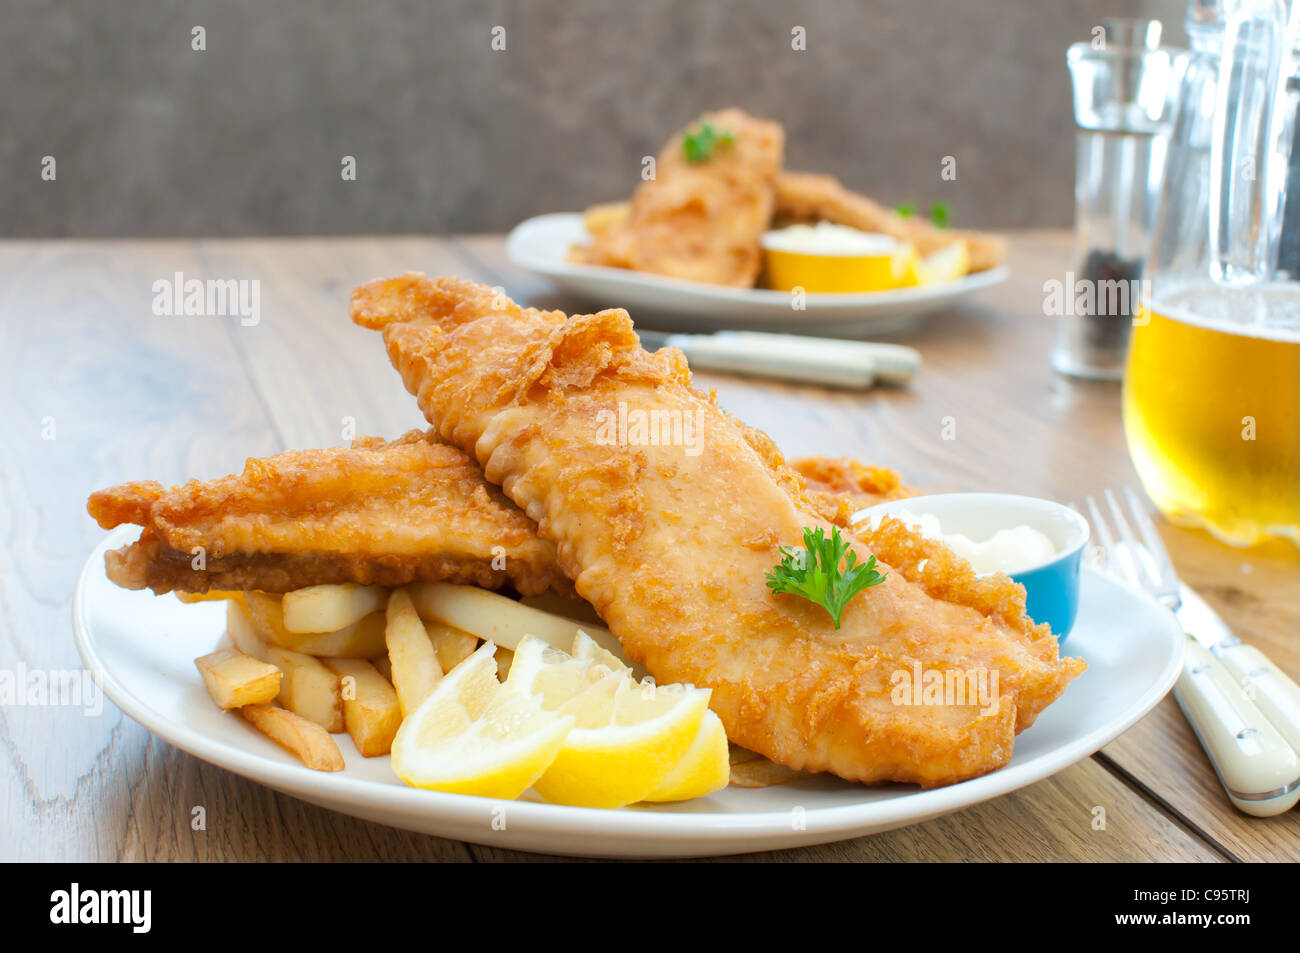 Fried fish fillets with chips - Stock Image